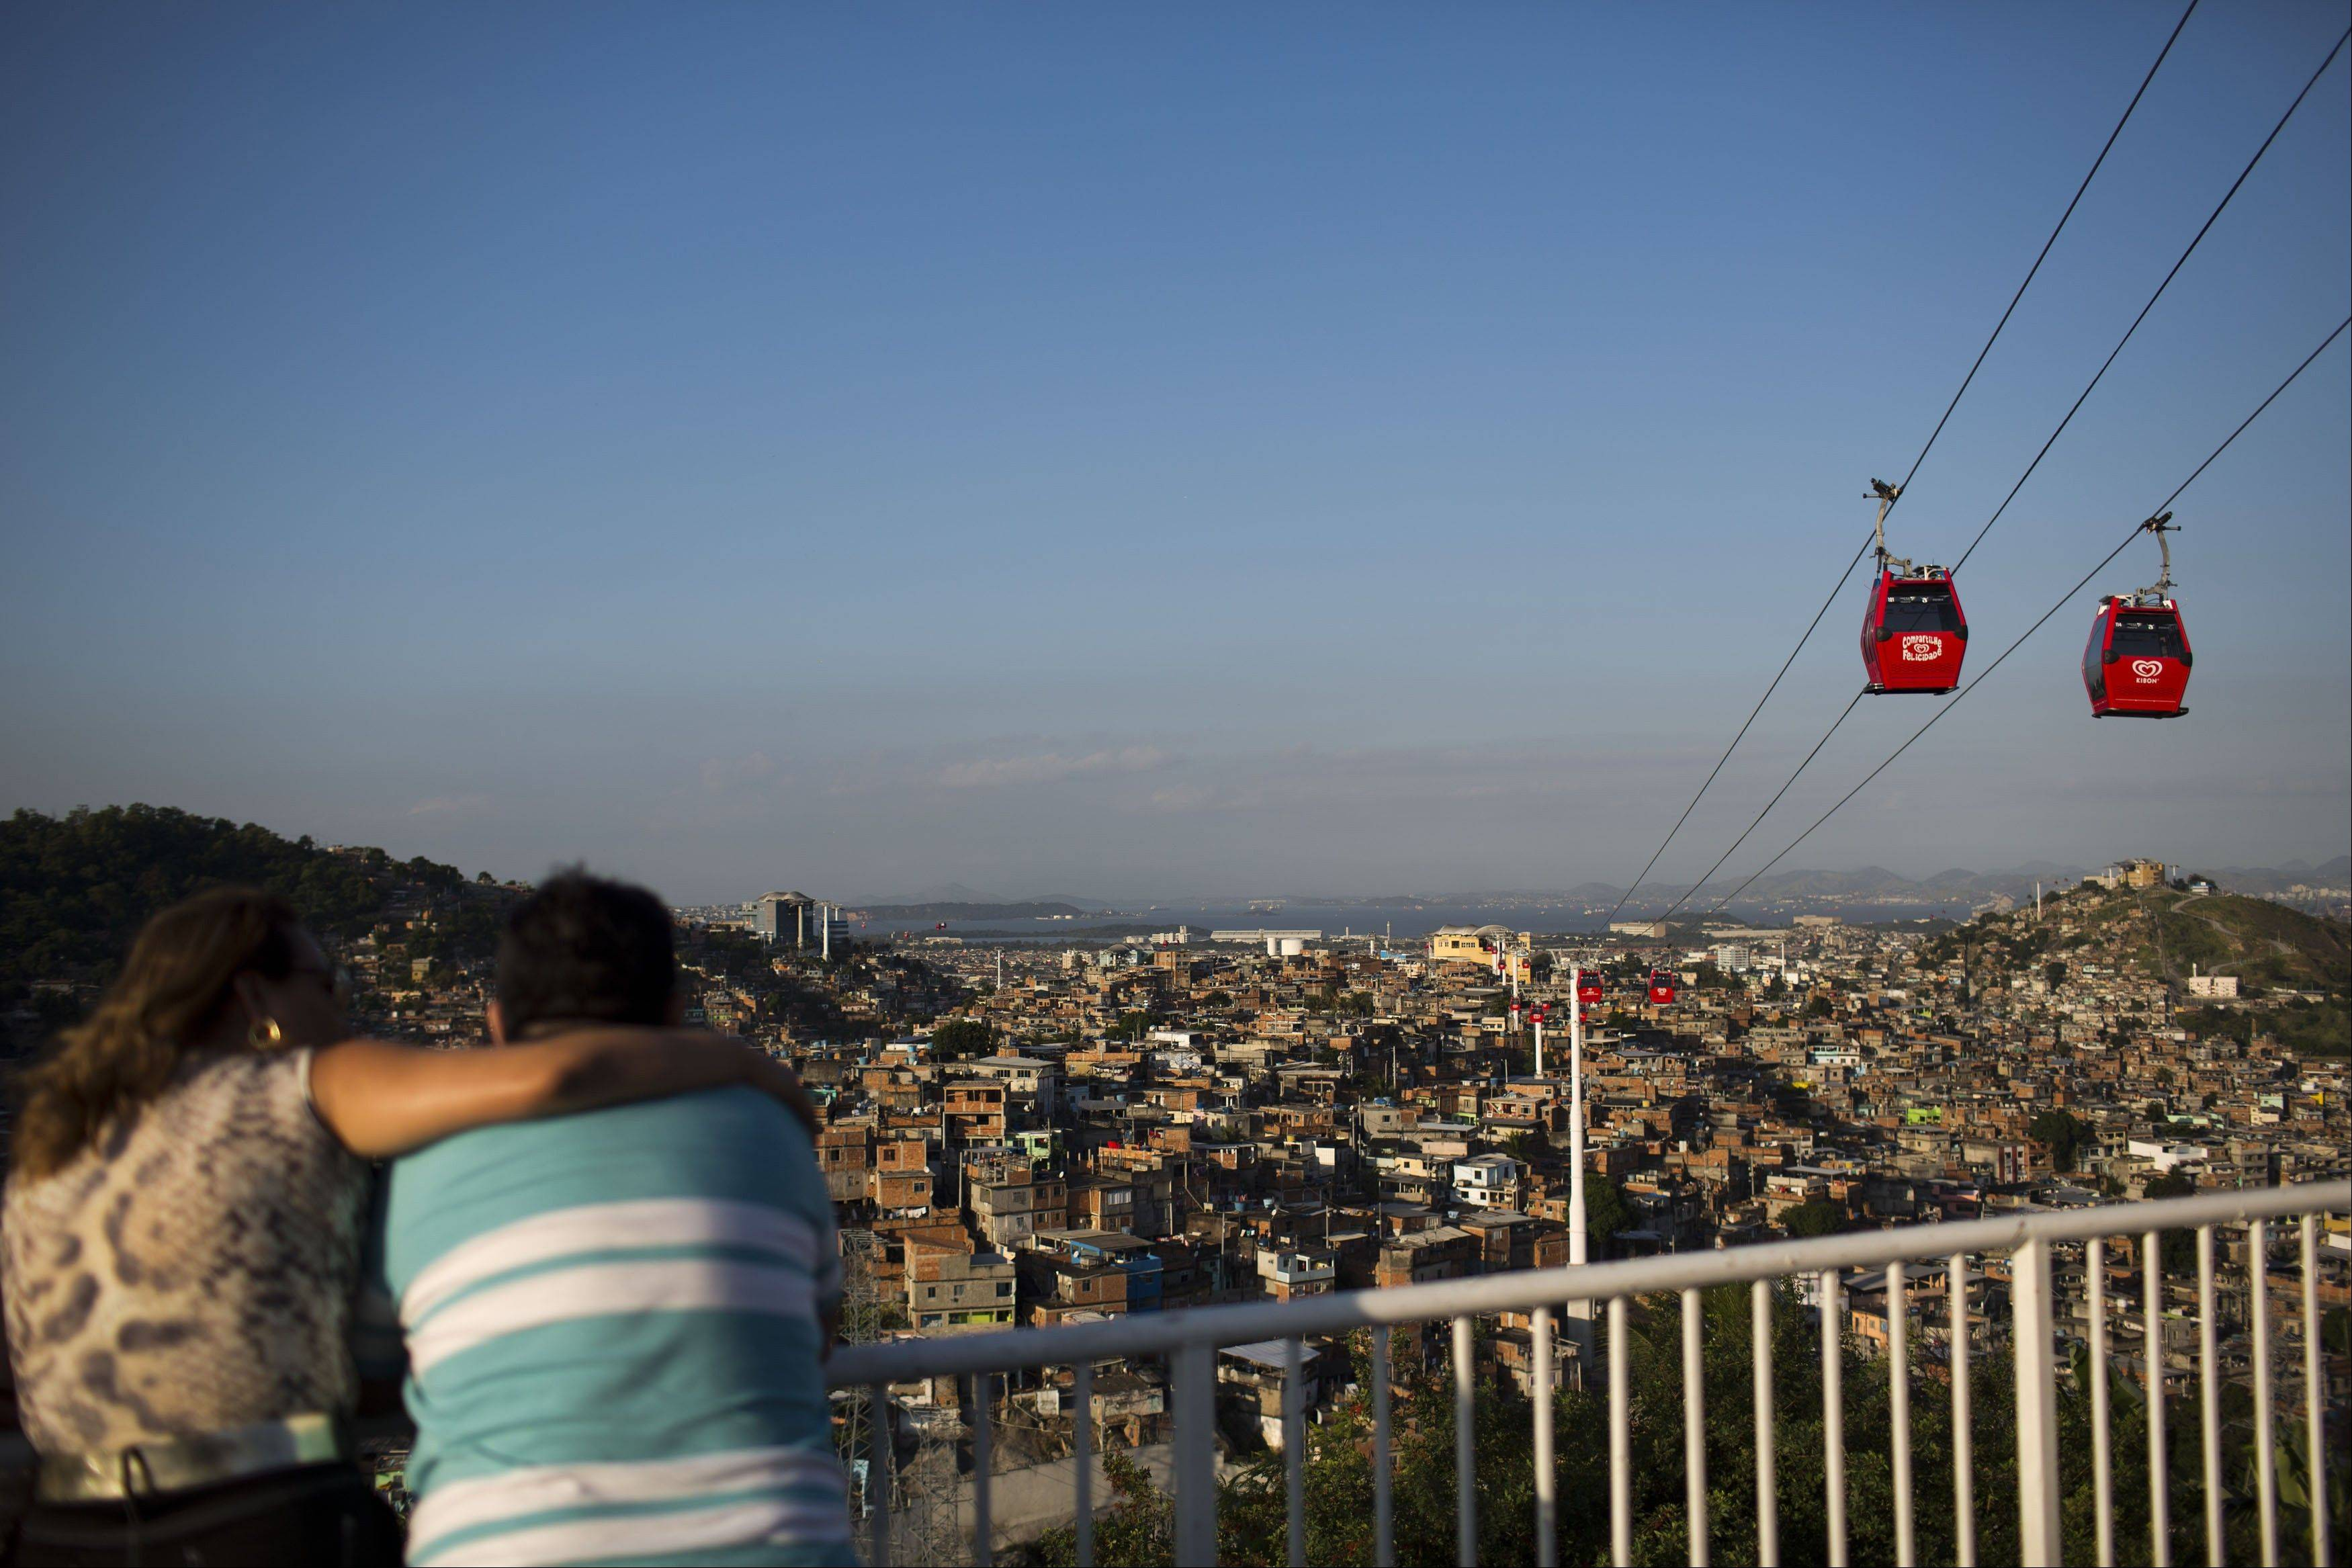 A couple looks out over the Complexo do Alemao slum where cable-cars move commuters above the homes in Rio de Janeiro, Brazil. The cable-car system linking six of Alemao's hilltops over a 2.3-mile route has become a popular tourist attraction.